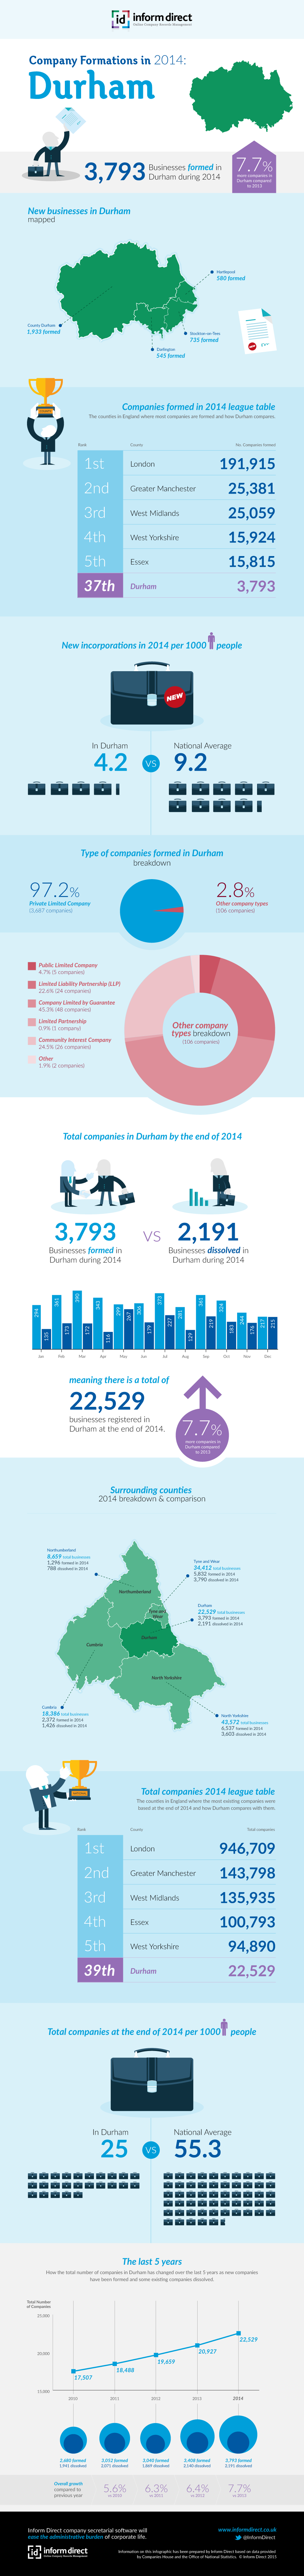 Inform Direct - Company Formations in Durham 2014 Infographic